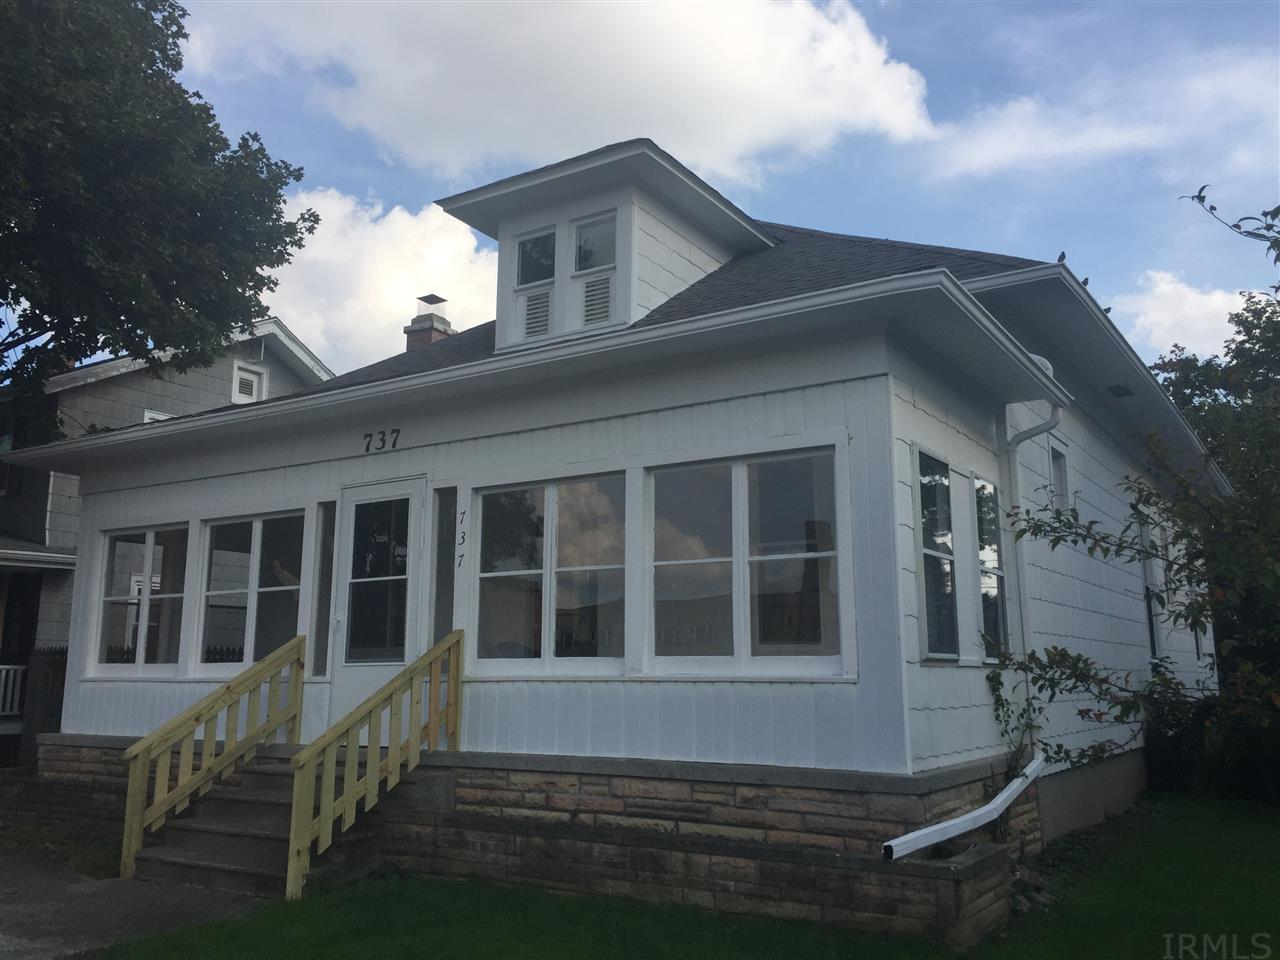 Totally Updated and Refreshed in 2017! Classic Charm in a well established neighborhood, conveniently located close to Downtown, Franke Park and Zoo, and all things Fort Wayne! From the quaint brick paved street and views of steeples to the large enclosed front porch, detailed woodwork, painted wood floors and remodeled kitchen & bath one look and you will fall in love! Ready for quick closing this home is a real gem!